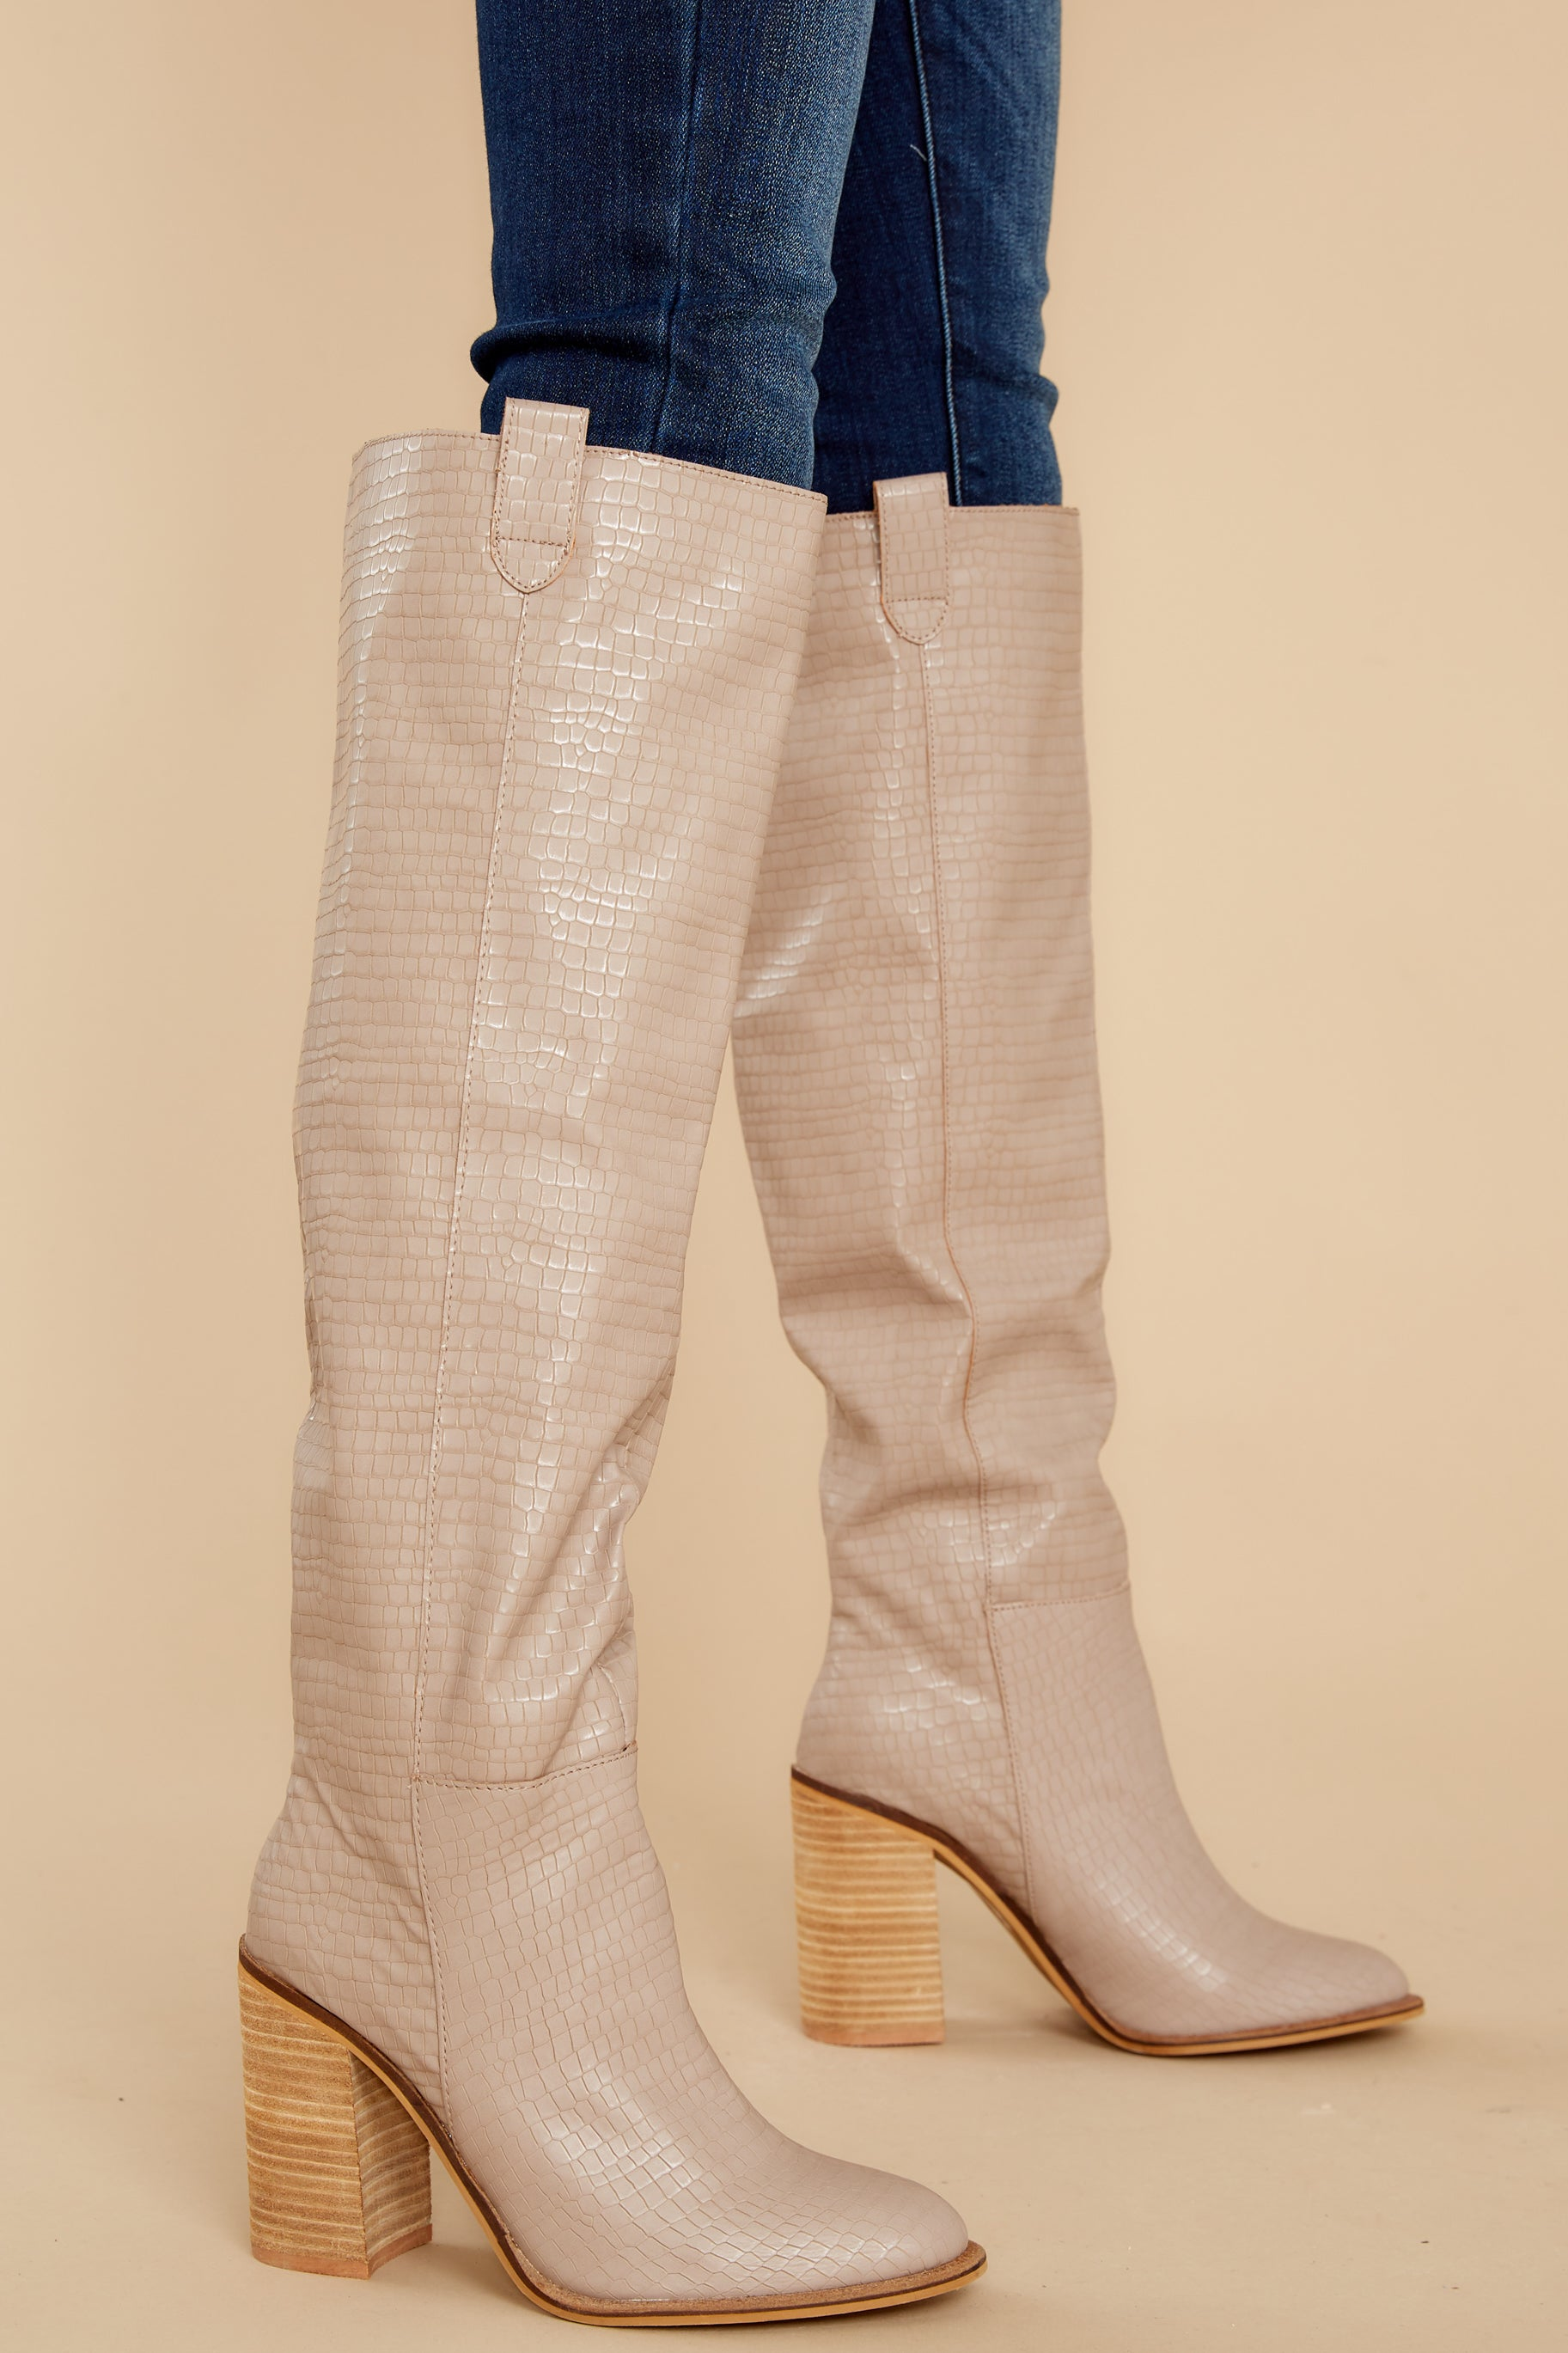 1 Noted Character Taupe Crocodile Knee High Boots at reddress.com